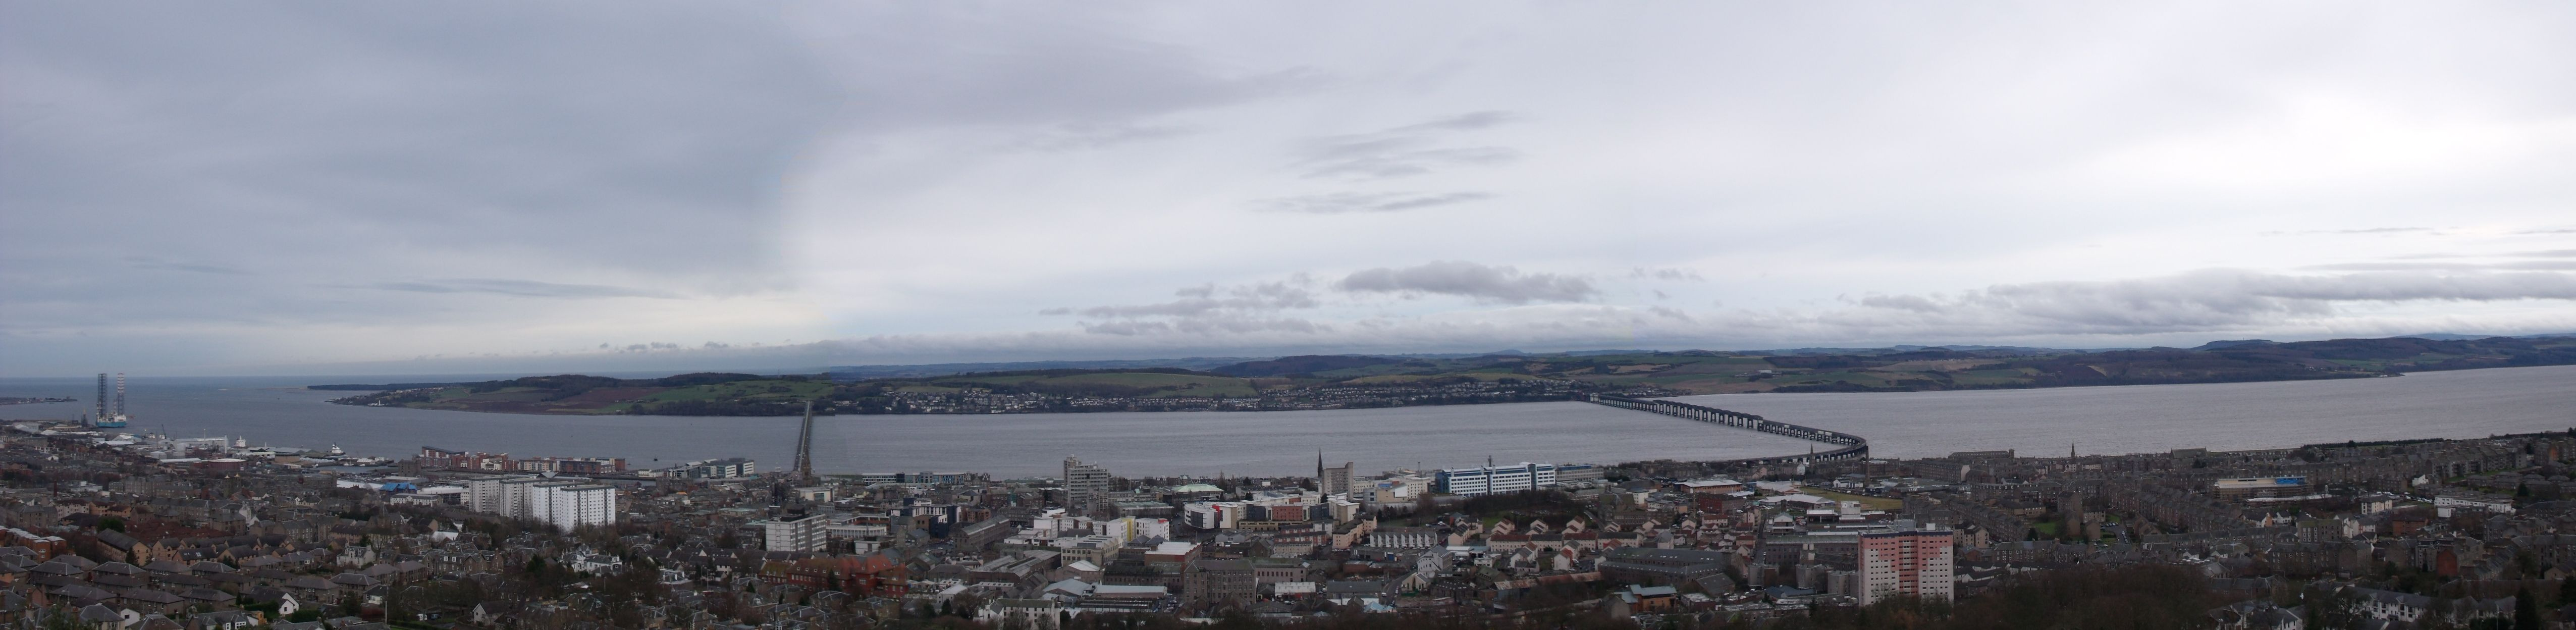 Cloudy day in my home town of Dundee, looking over the city from the Law Hill.